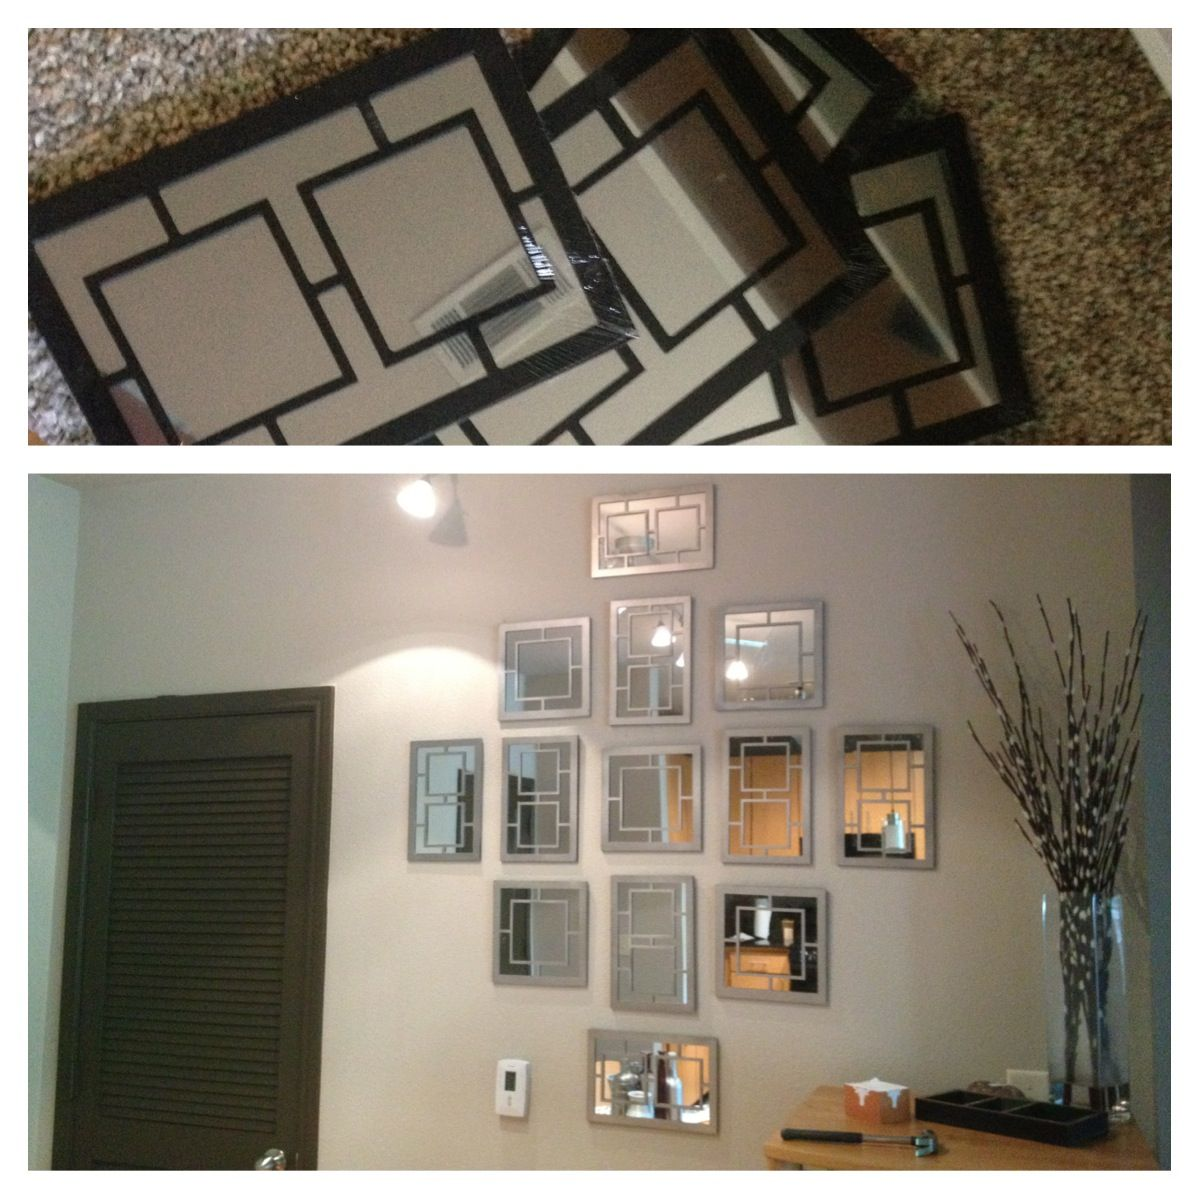 Dollar Store Makeover! $1 Mirrors And A Little Spray Paint